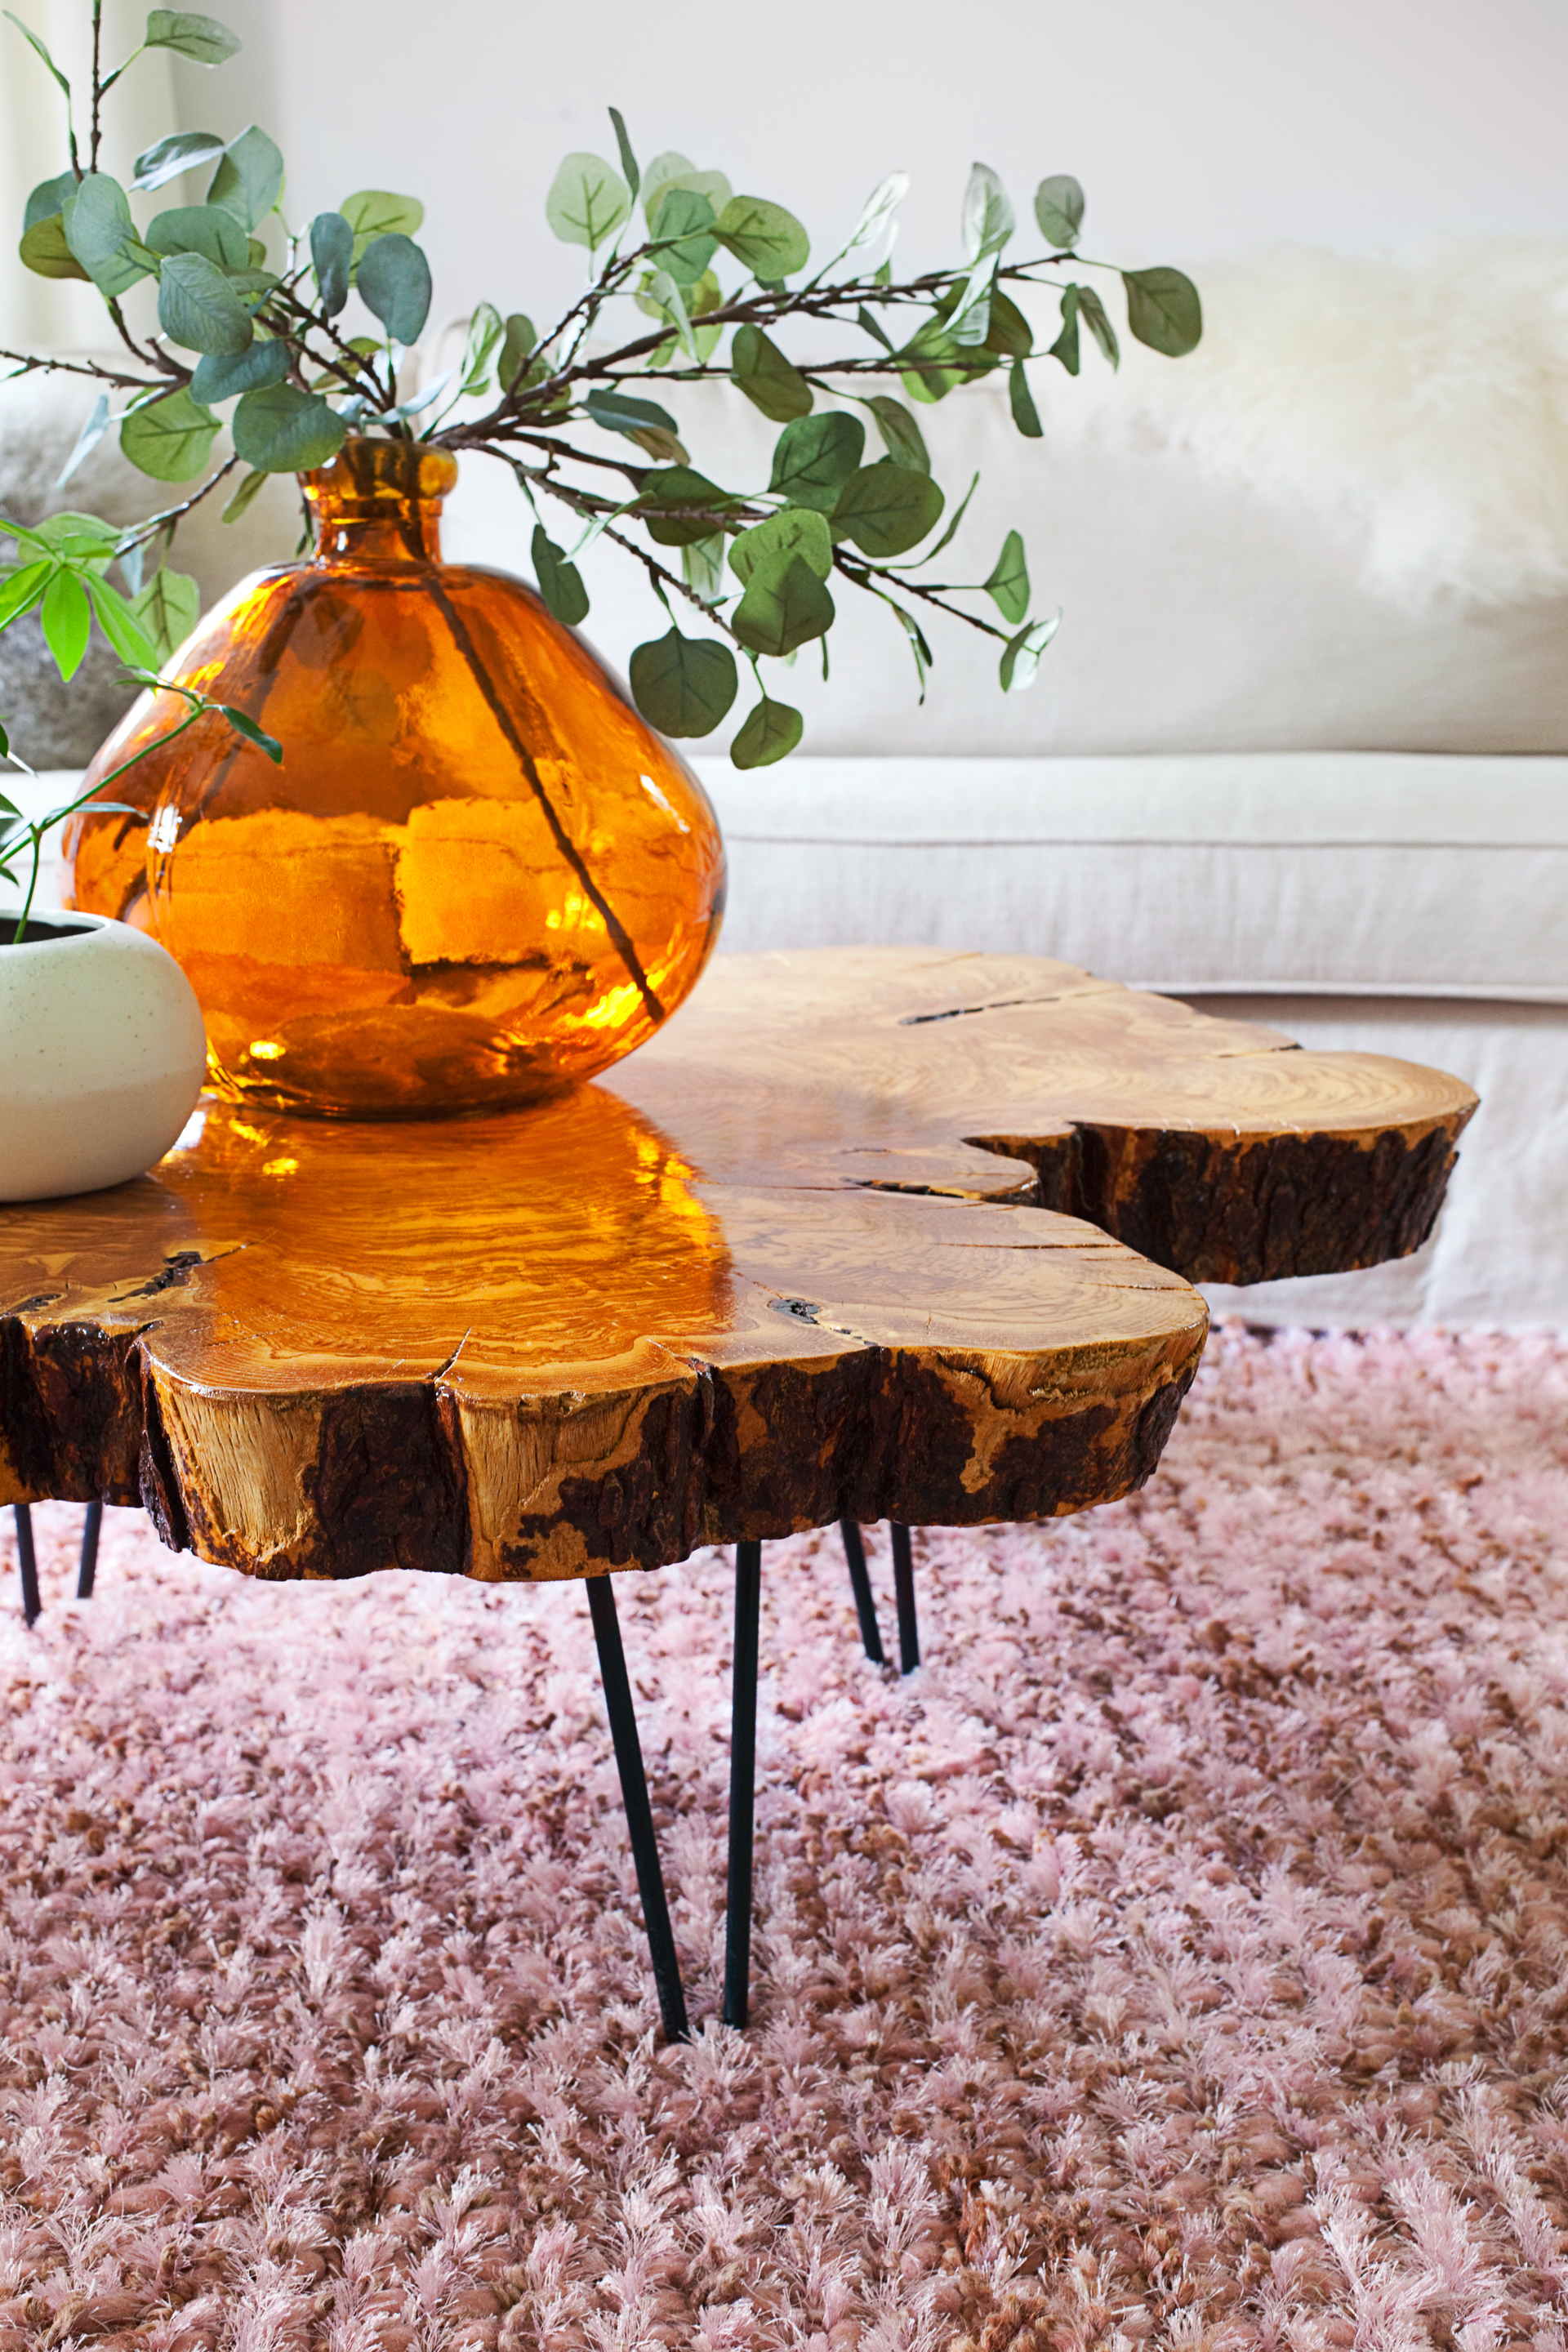 sourcing materials for live edge coffee table beautiful mess wood slice accent how make metal patio set door bar person next telephone coral home accessories monarch threshold